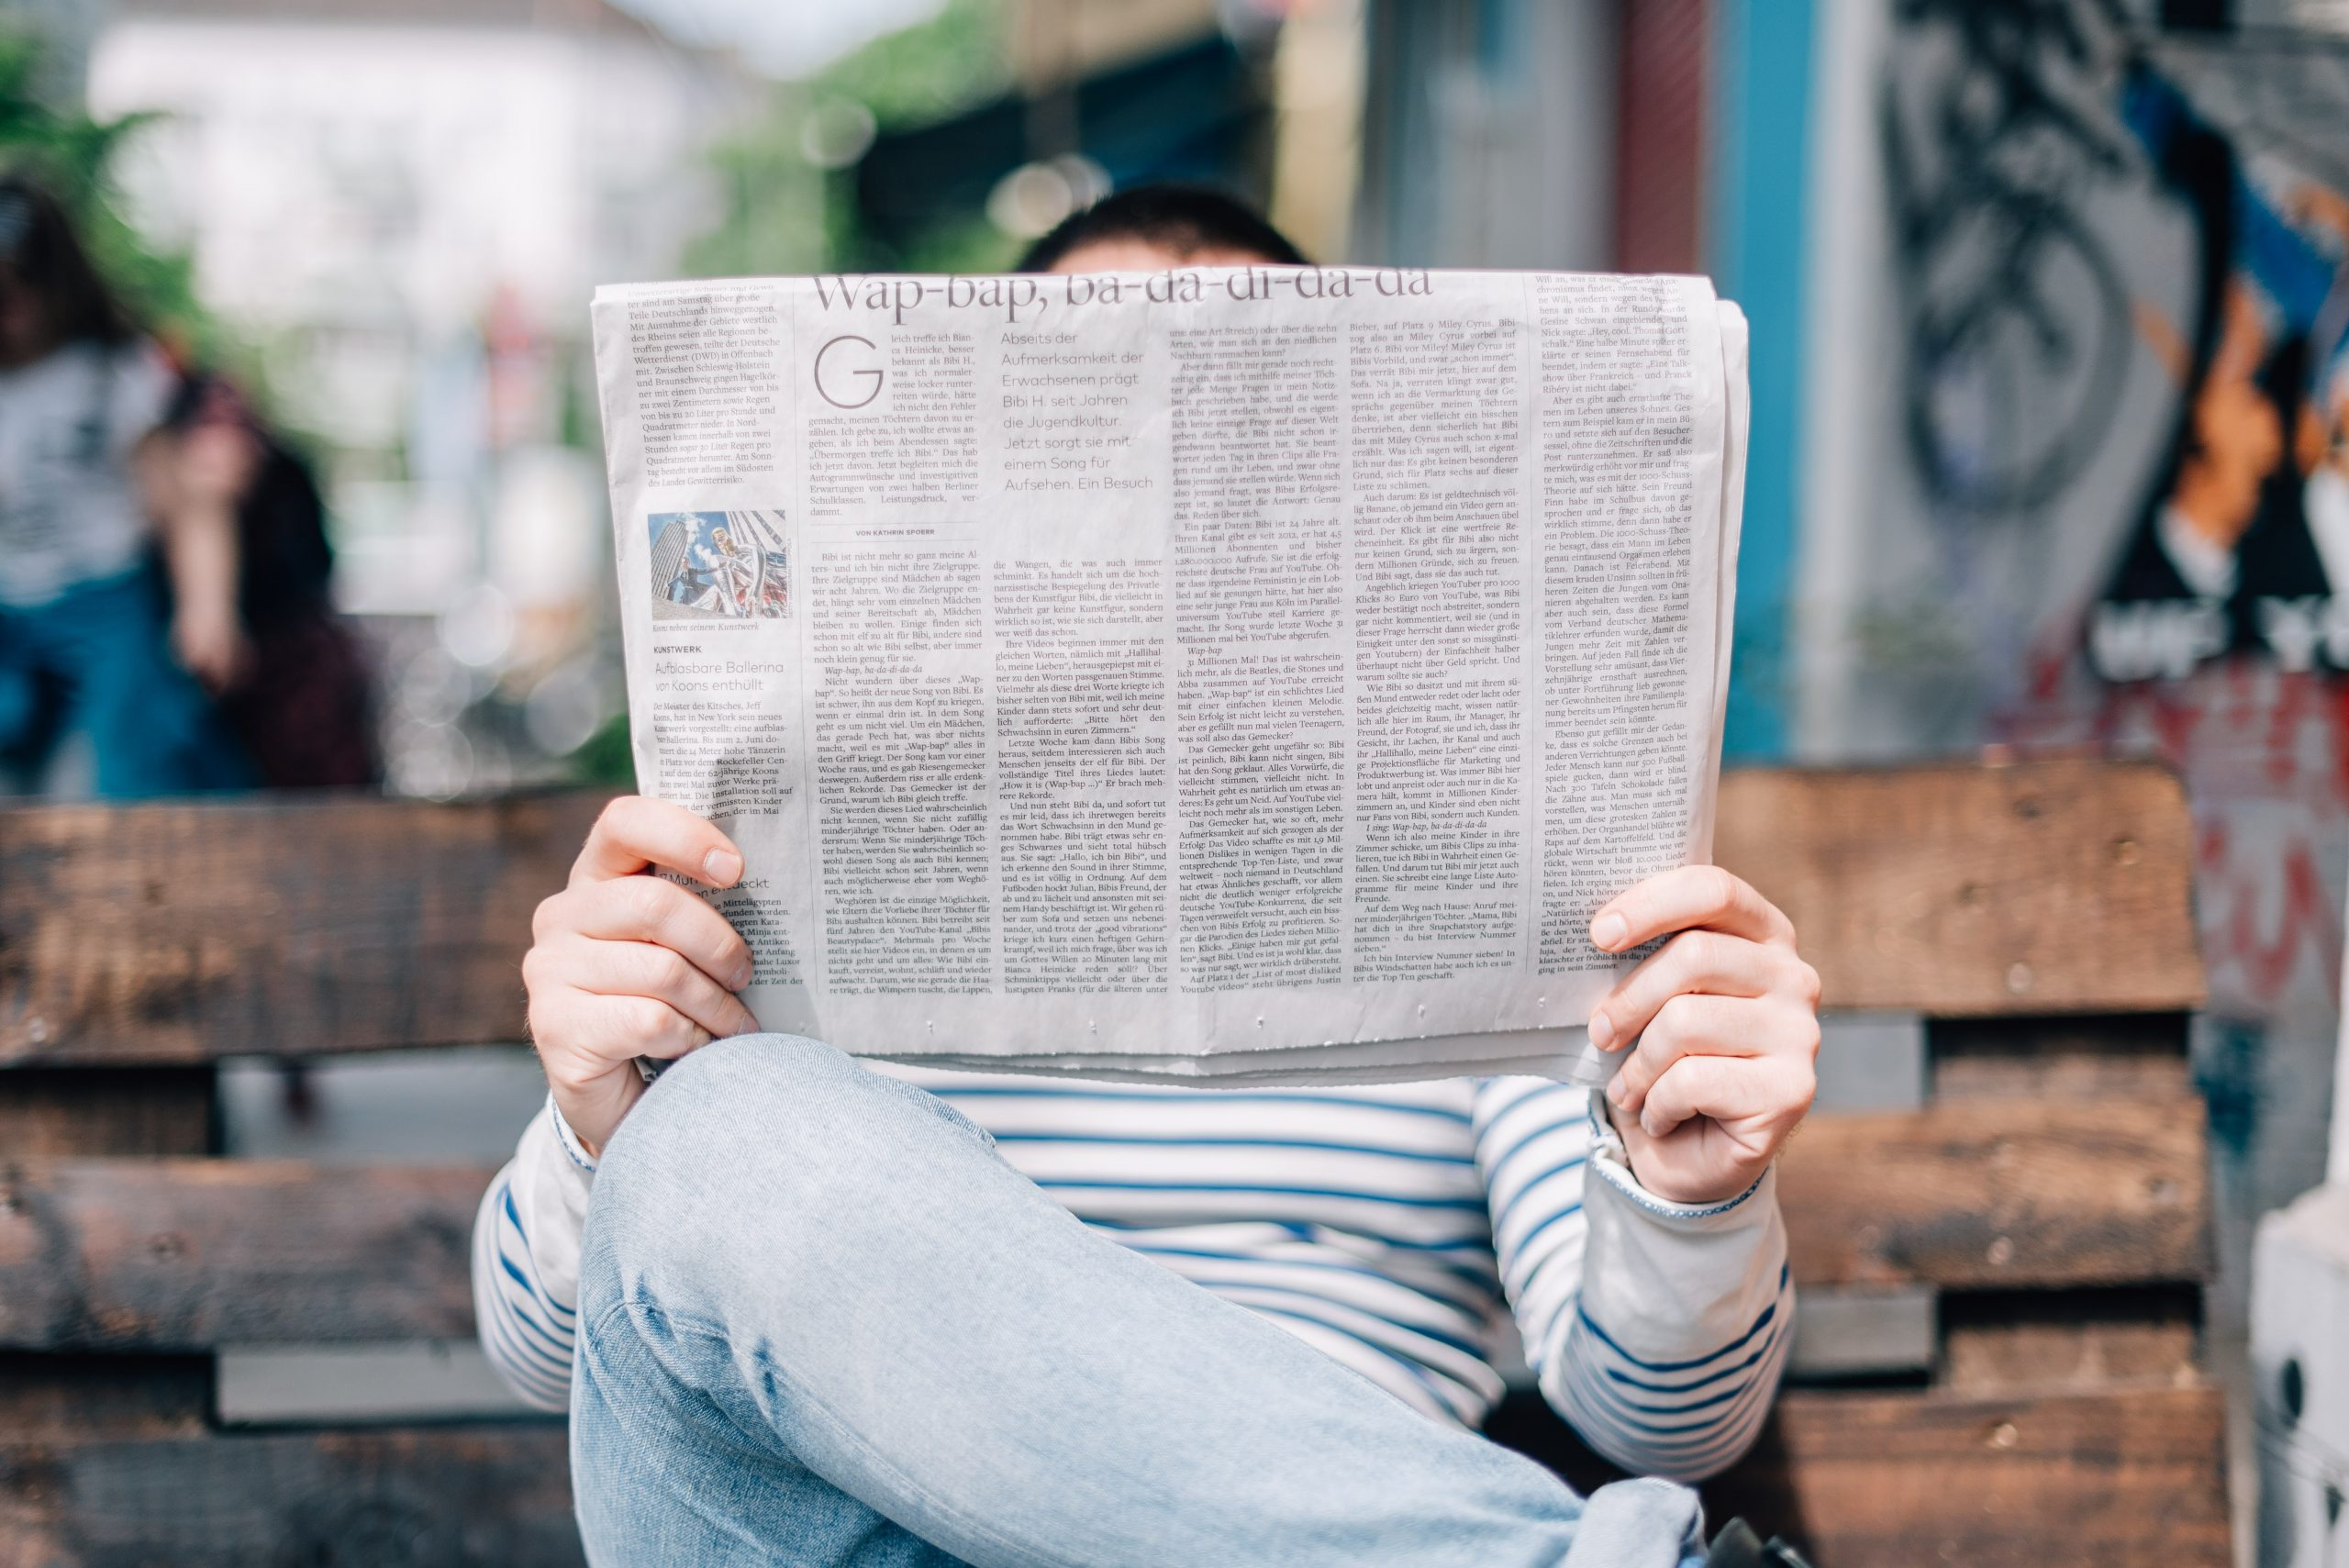 man reading newspaper to illustrate post on copywriting